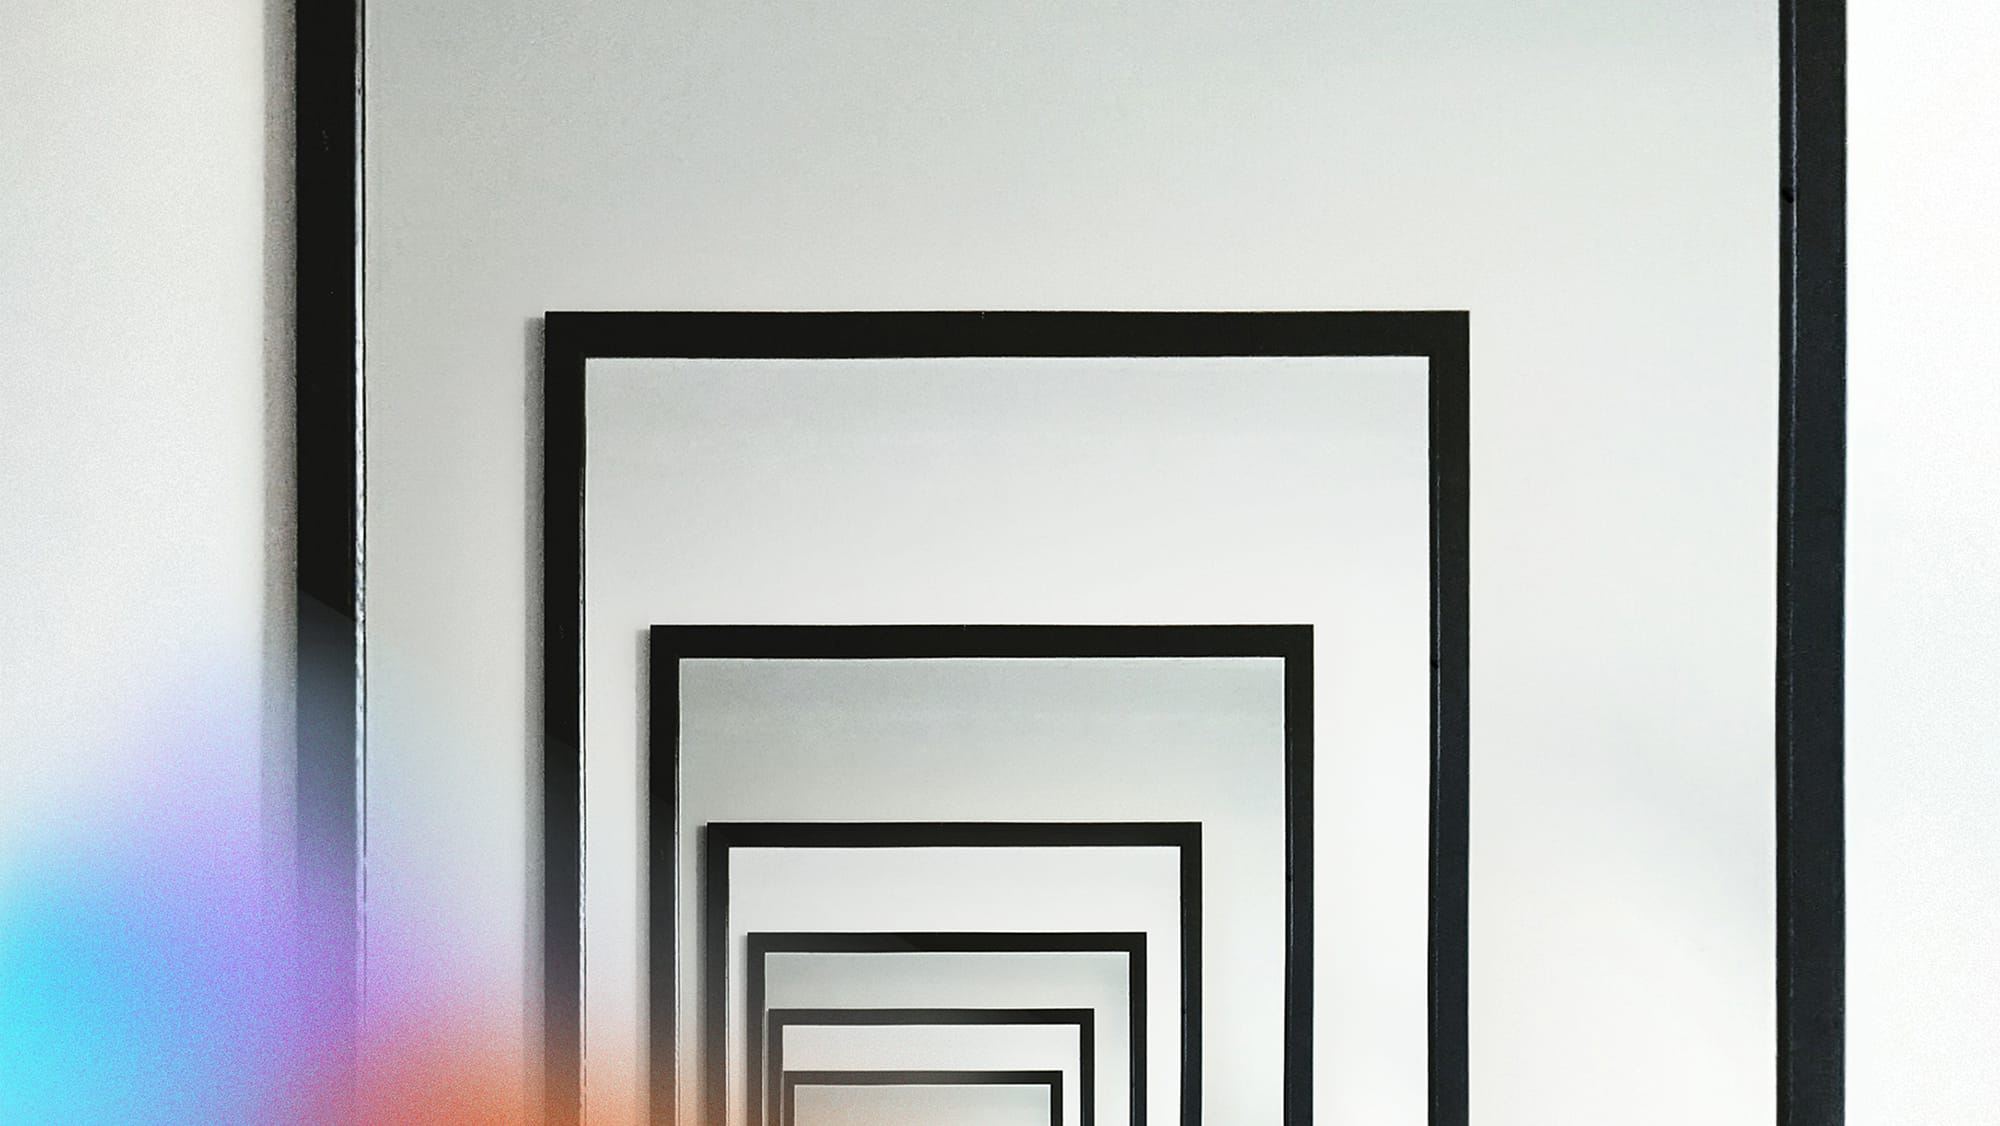 A series of mirrors reflecting each other ad infinitum.